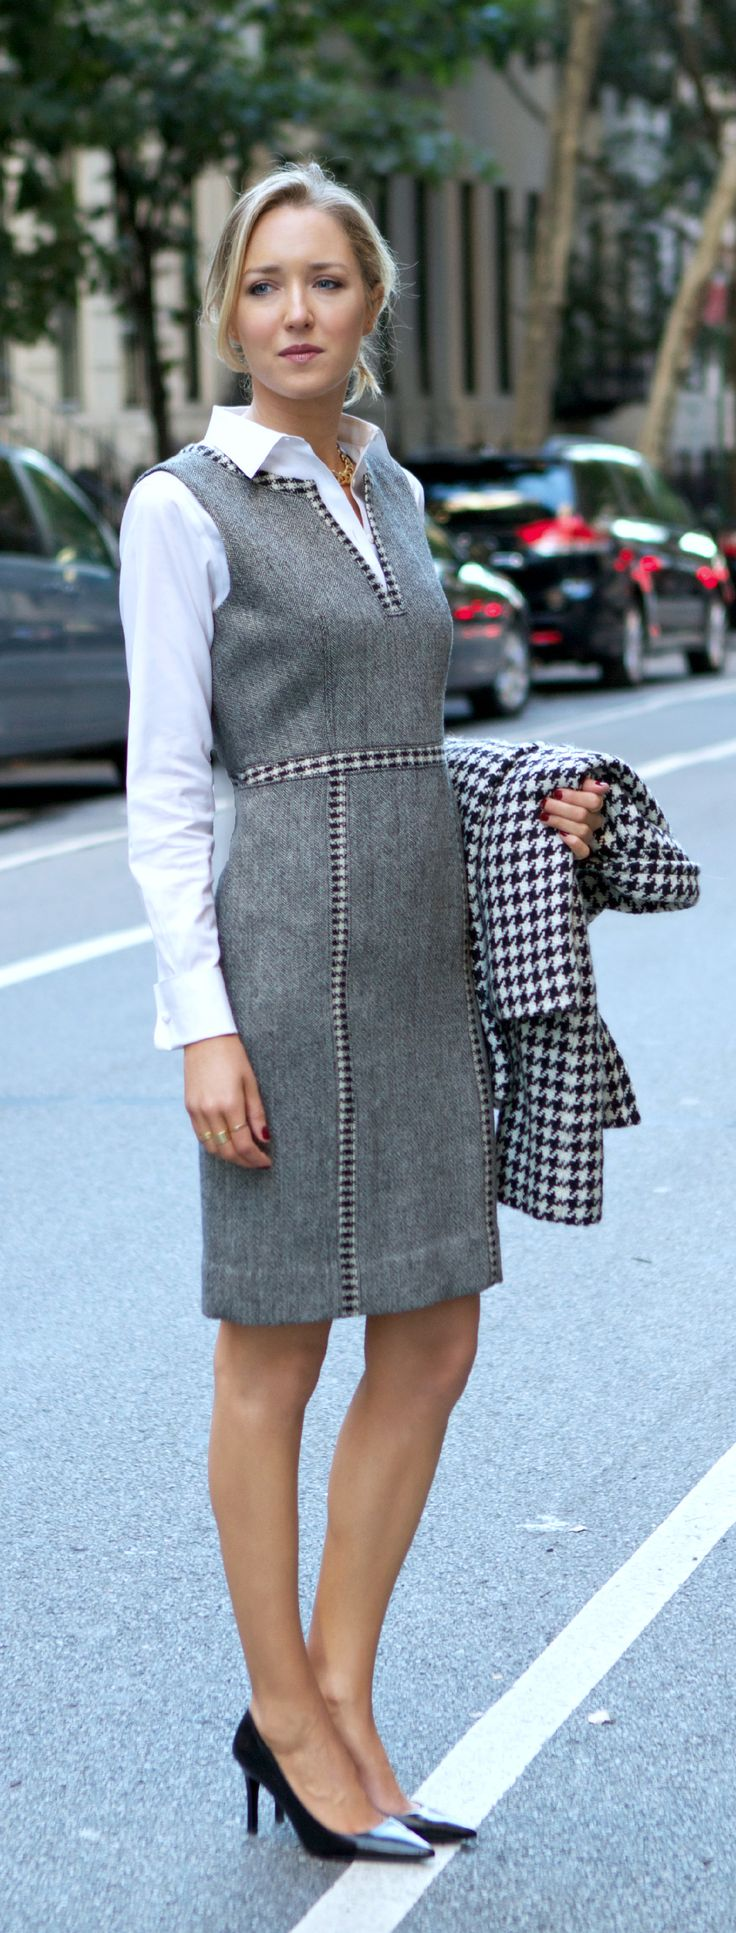 The Classy Cubicle: Mastering the Jumper {tory burch, brooks brothers, herringbone, houndstooth, winter work wear}